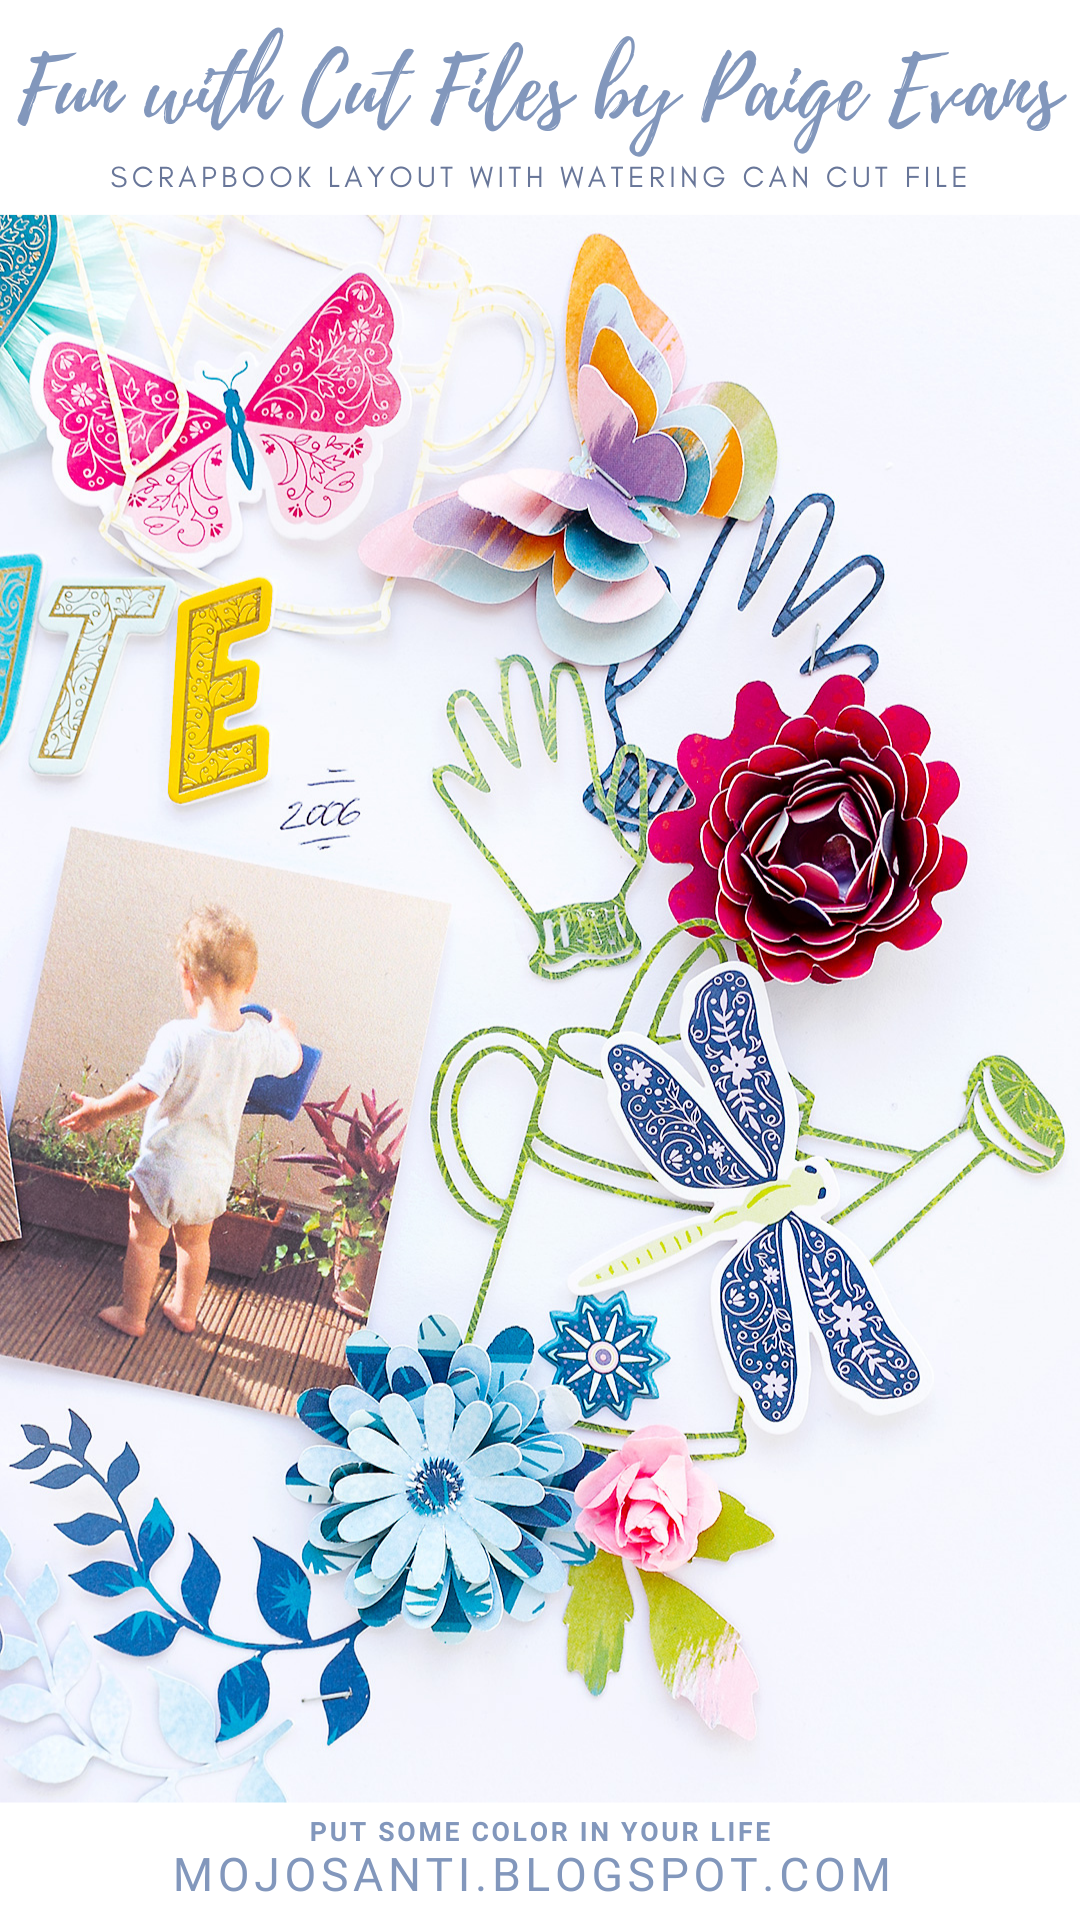 Pinterest Pin Scrapbook Layout with Watering Can Cut File by Paige Evans American Crafts Sandra Dietrich Mojosanti